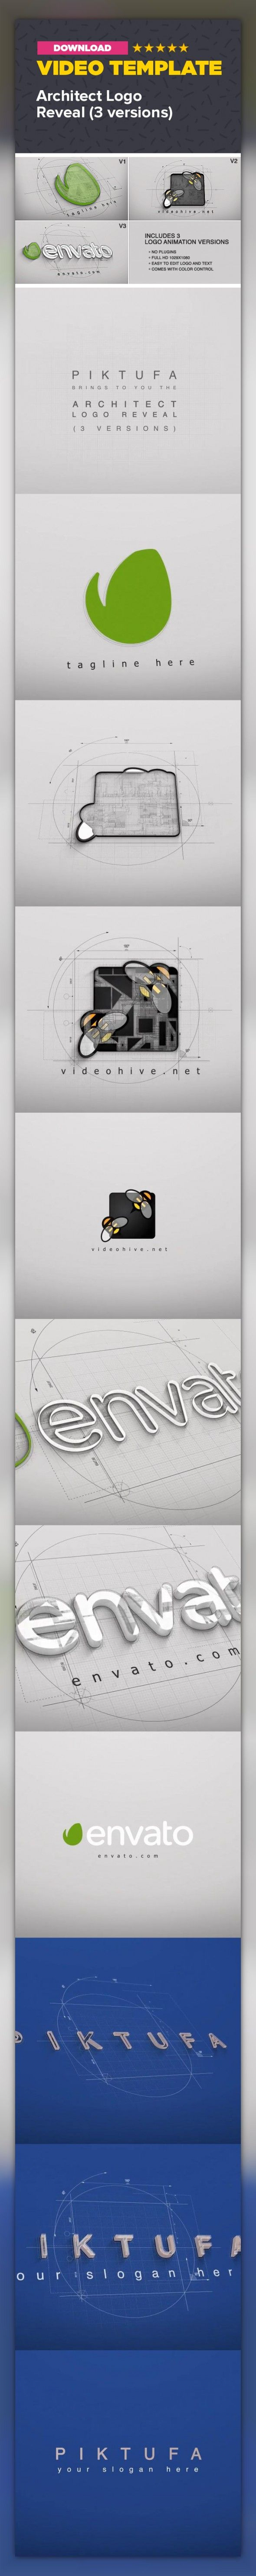 Architect logo reveal 3 versions malvernweather Gallery